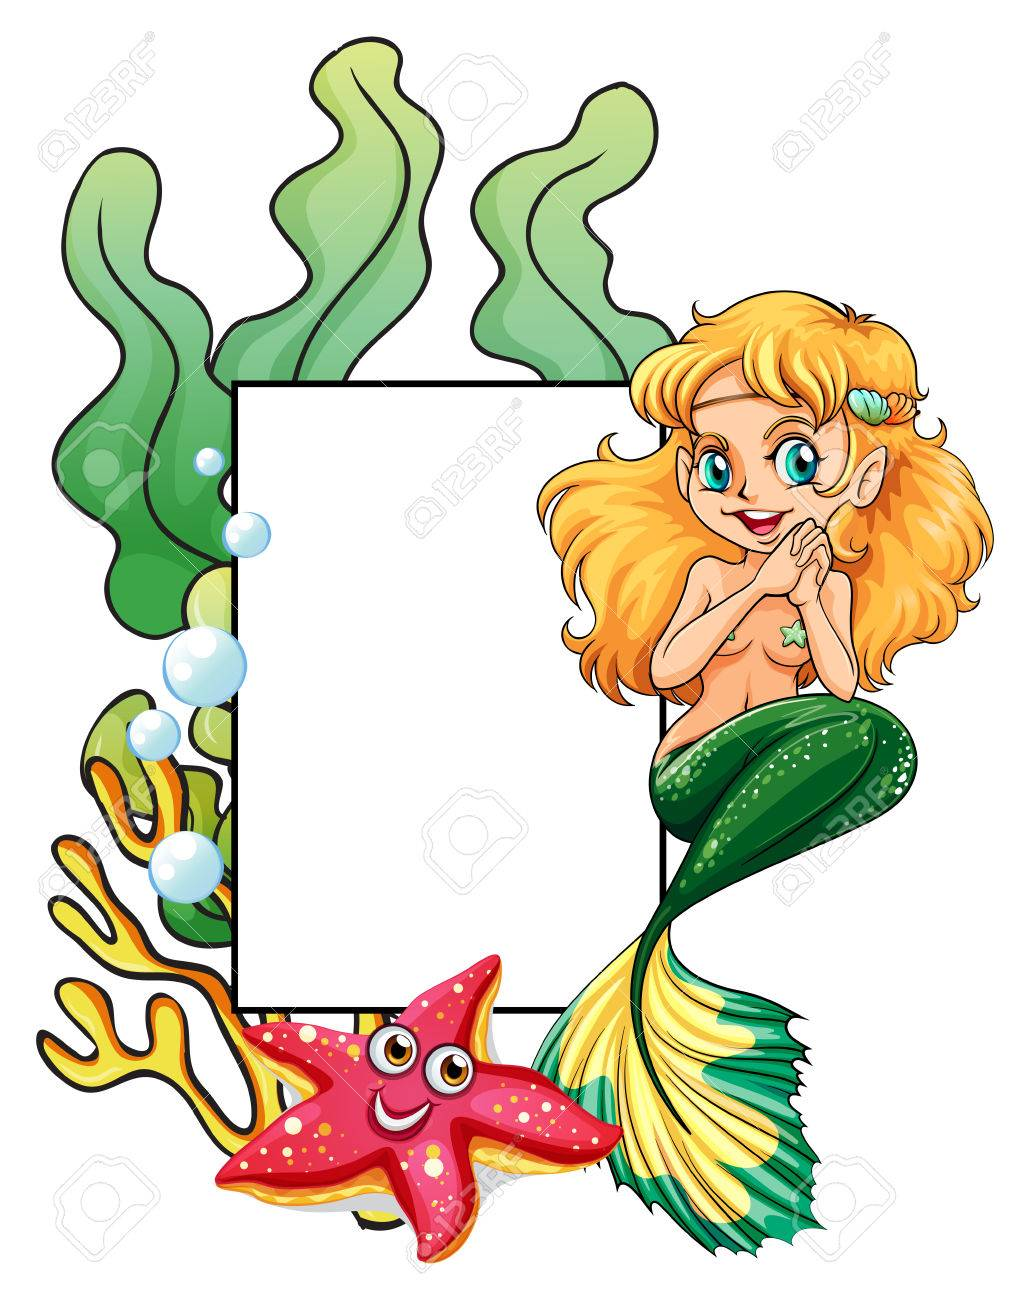 illustration of a mermaid template royalty free cliparts vectors